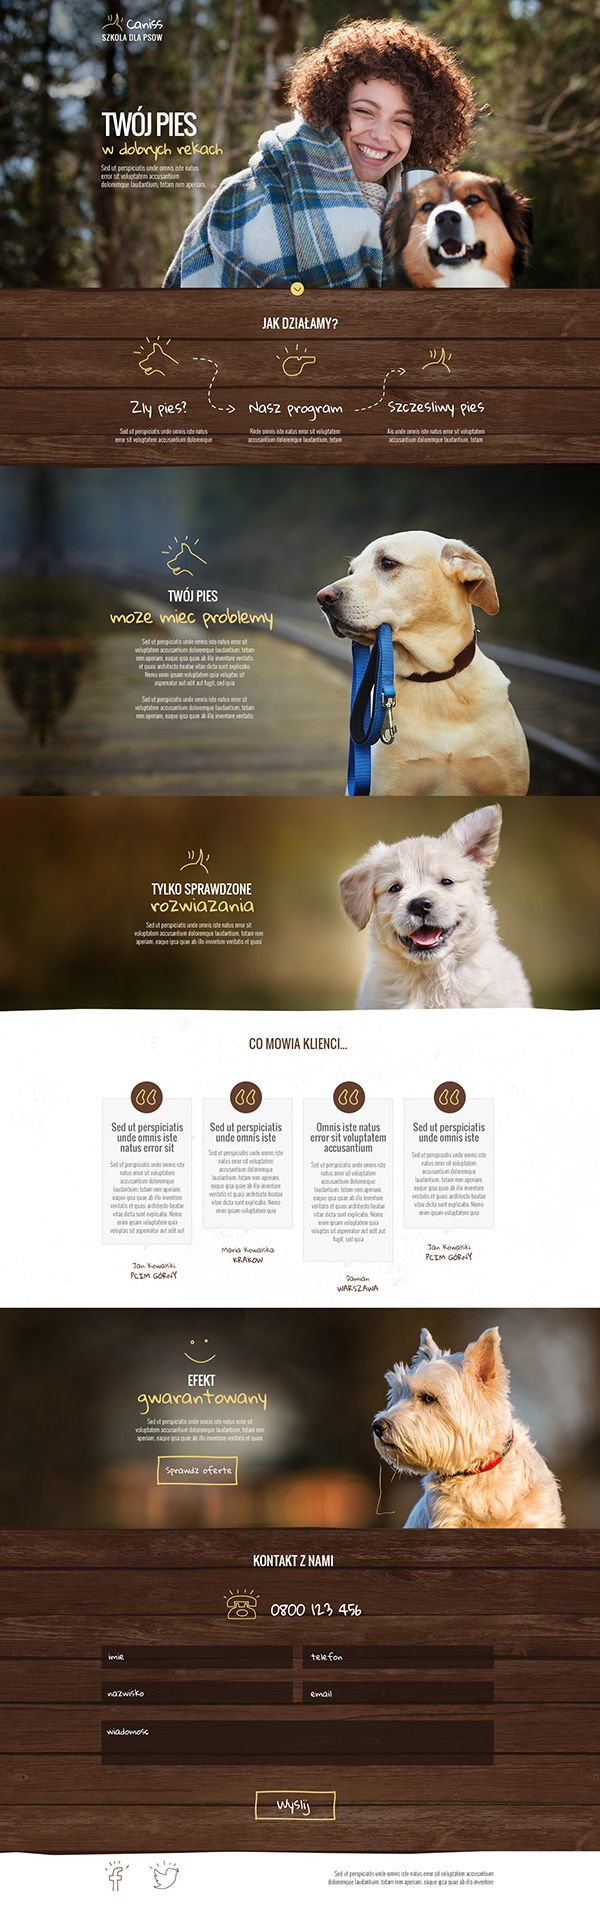 Caniss dog trainers - nice and simple website design.